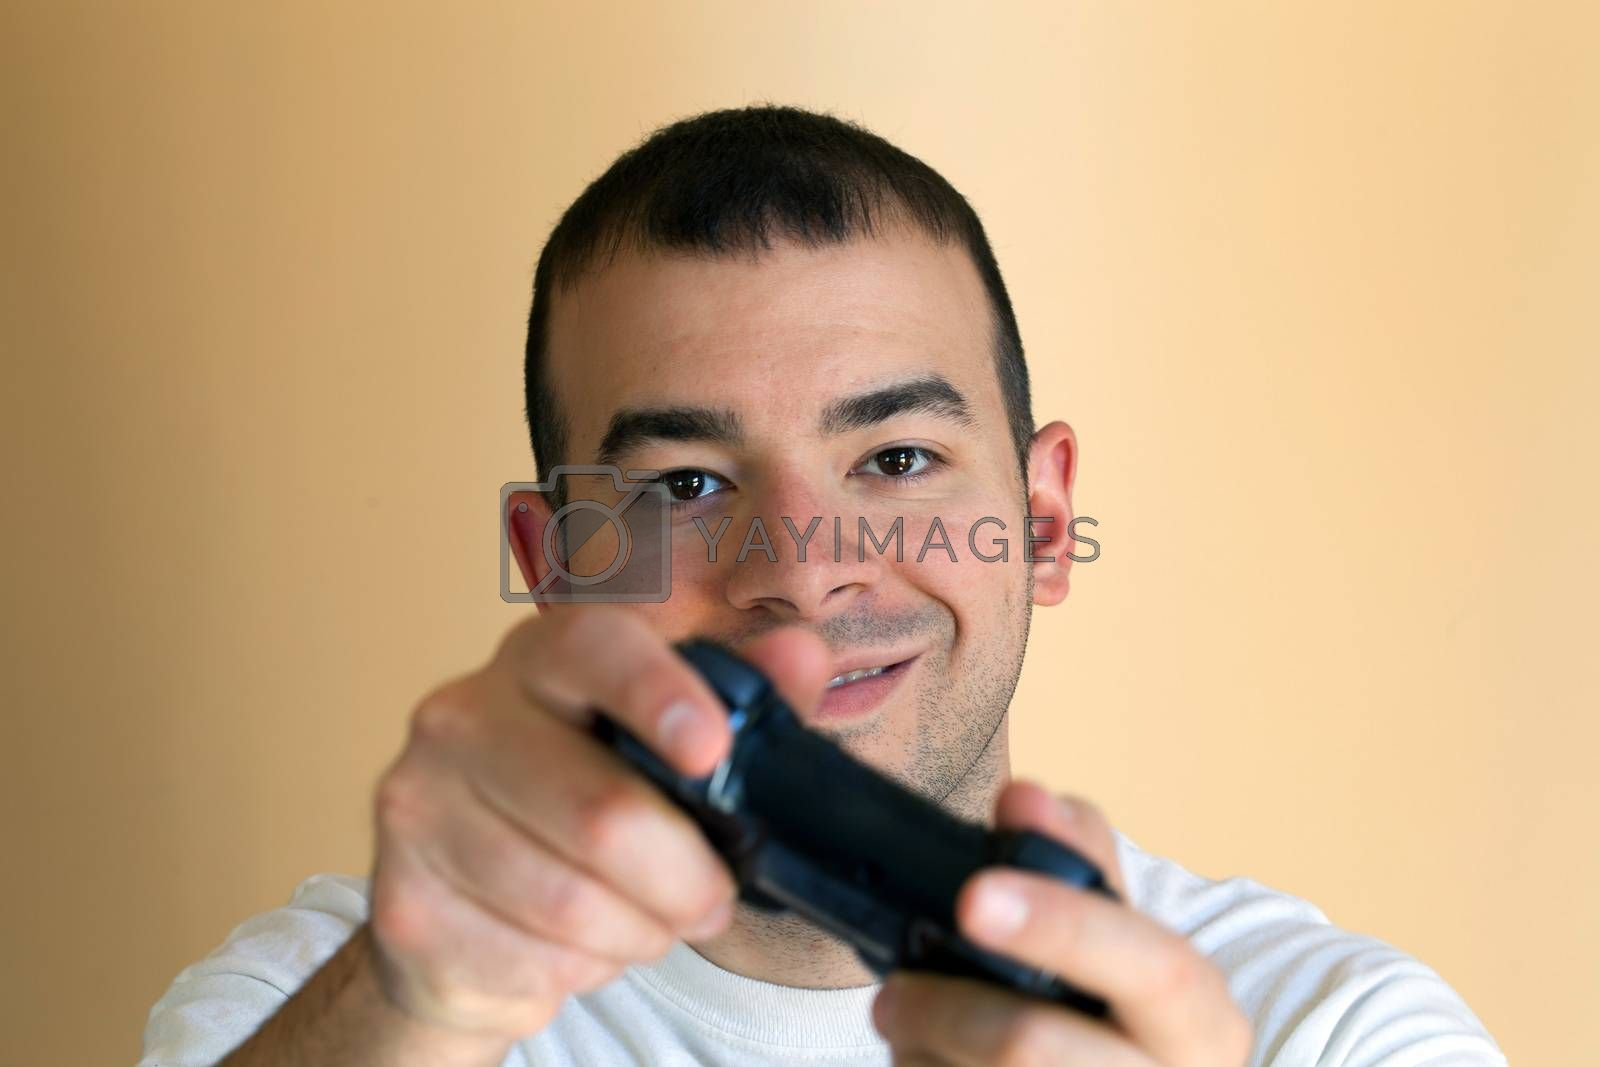 Royalty free image of Man Playing Video Games by graficallyminded